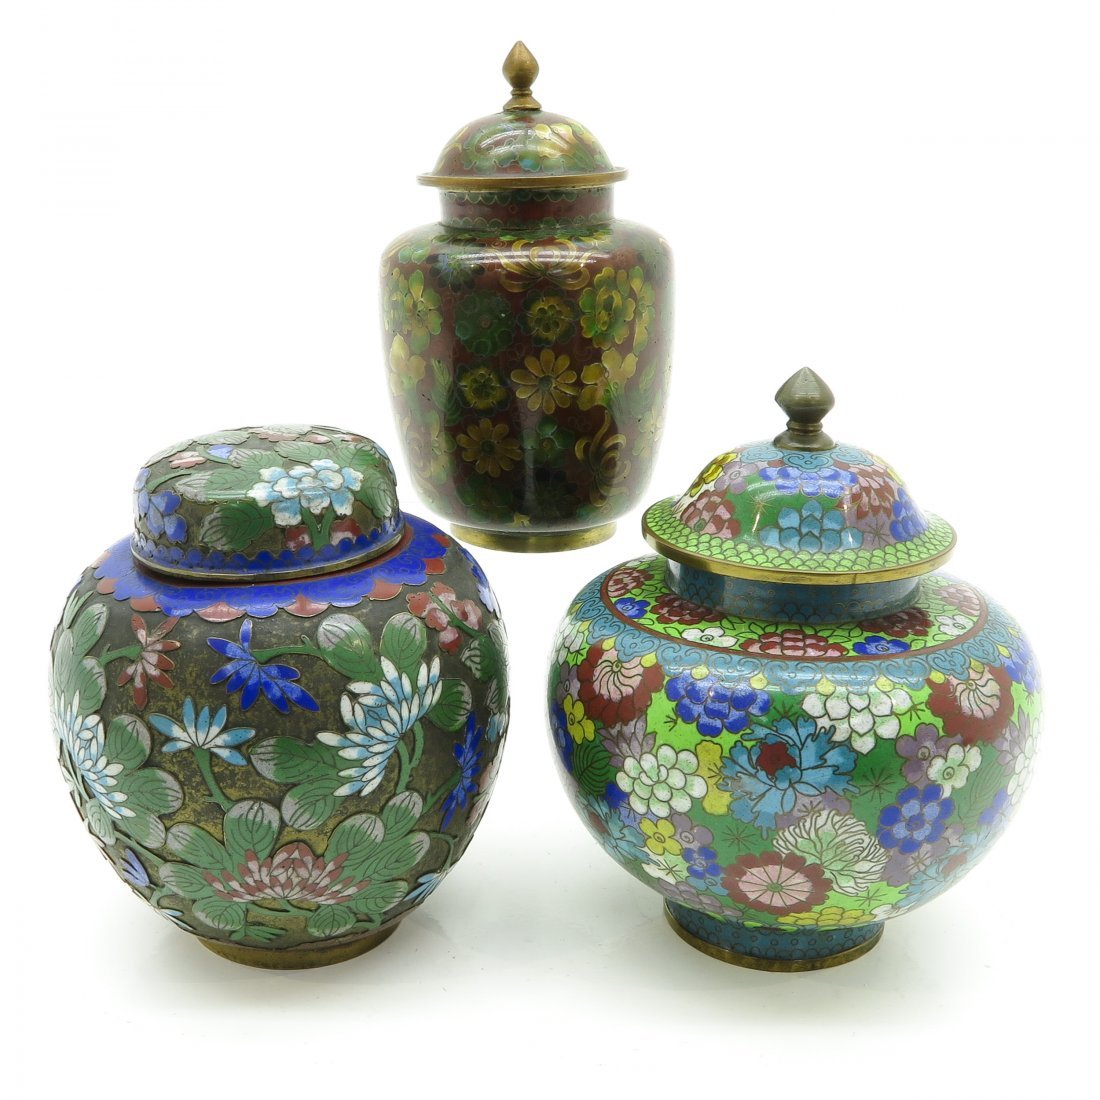 Lot of 3 Cloisonné Lidded Vases